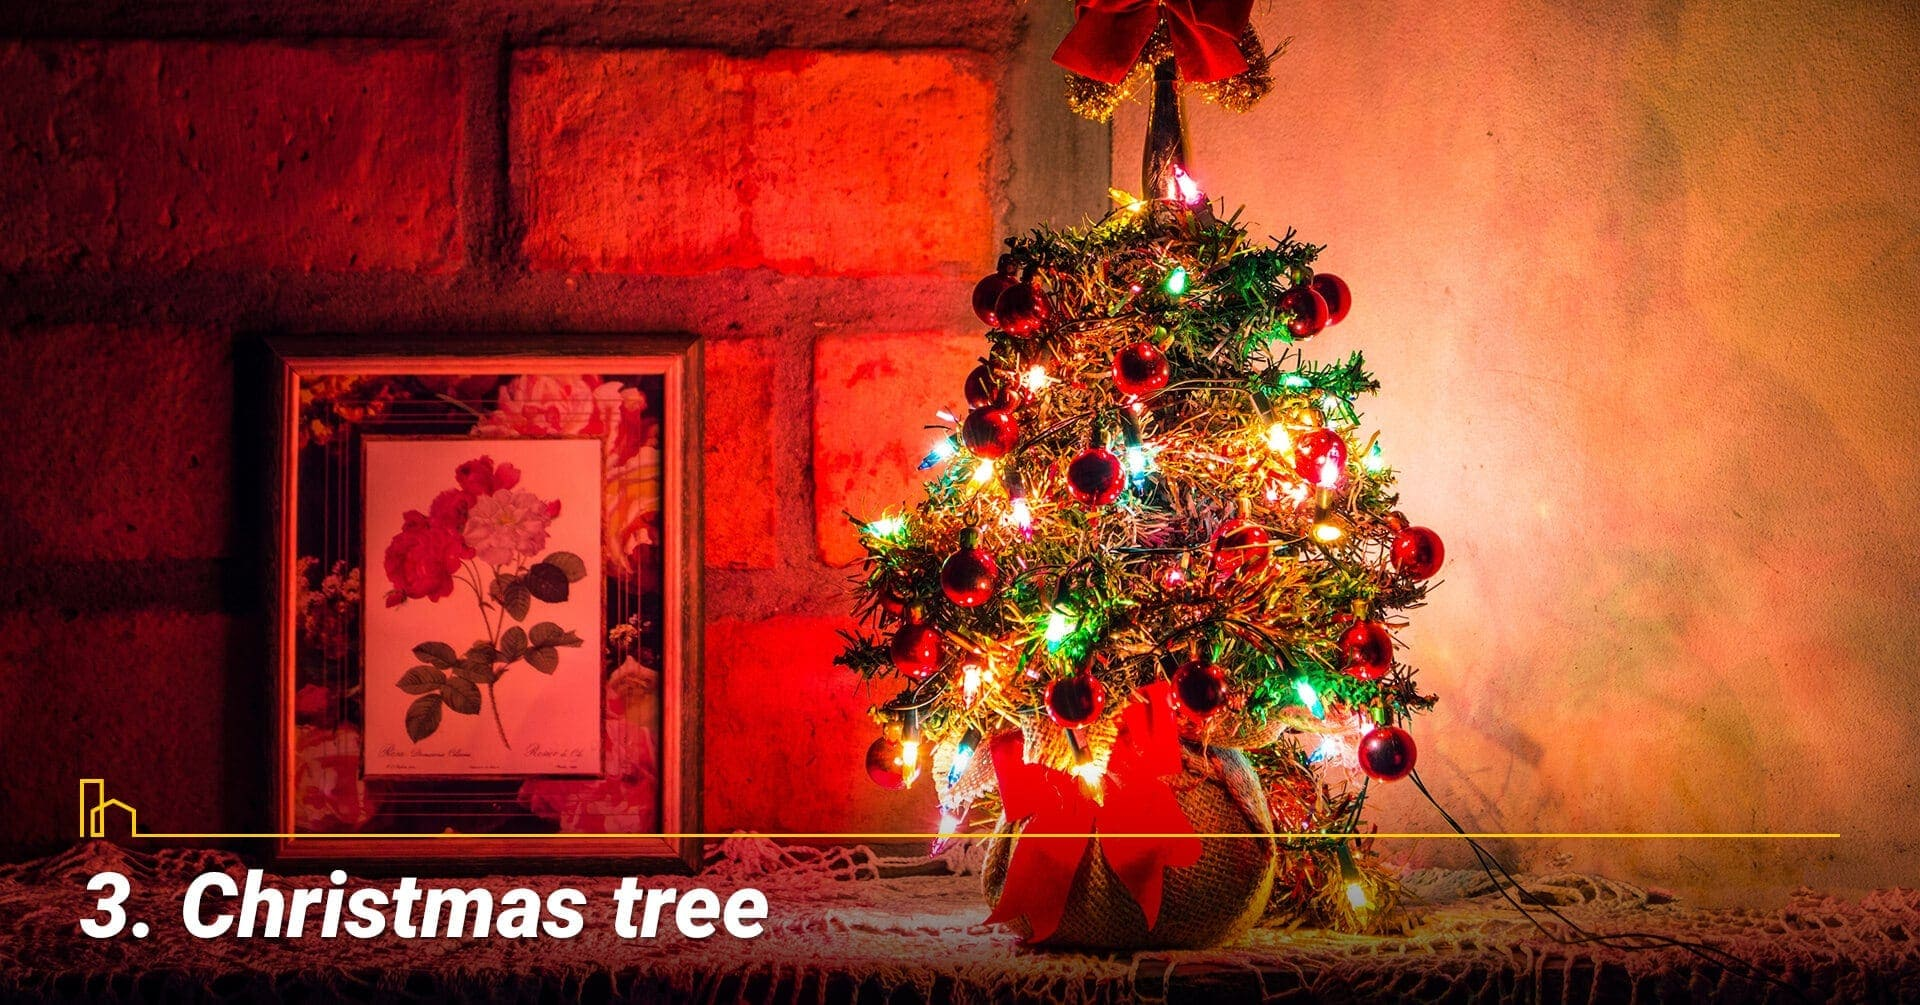 Christmas tree, decorate your home with Christmas tree